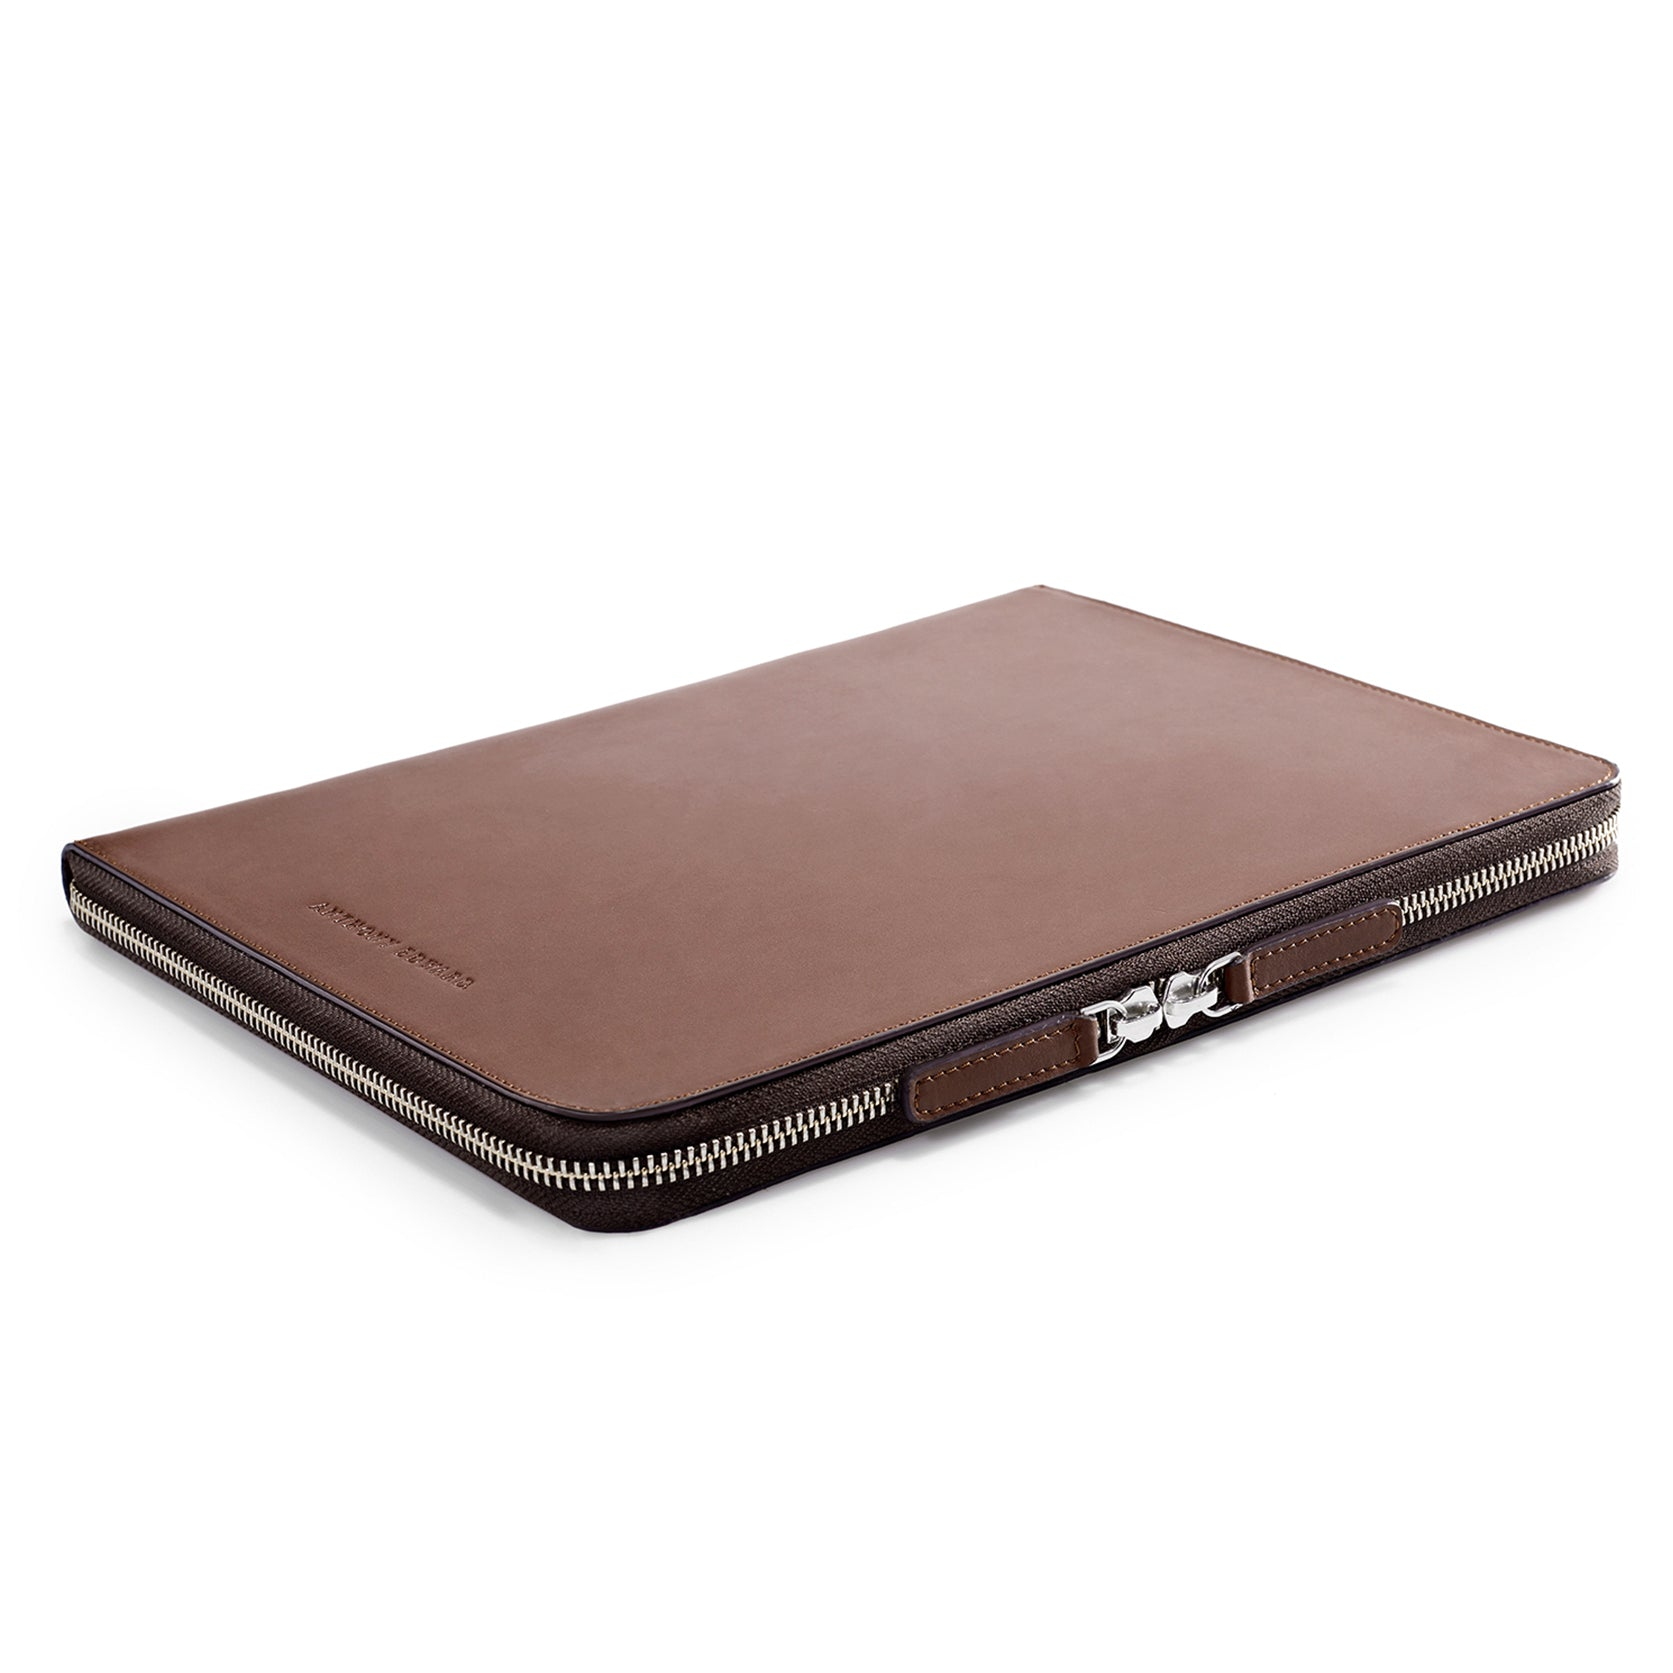 "LAPTOP PORTFOLIO 12"" BROWN NATURAL BEIGE (1920071860273)"